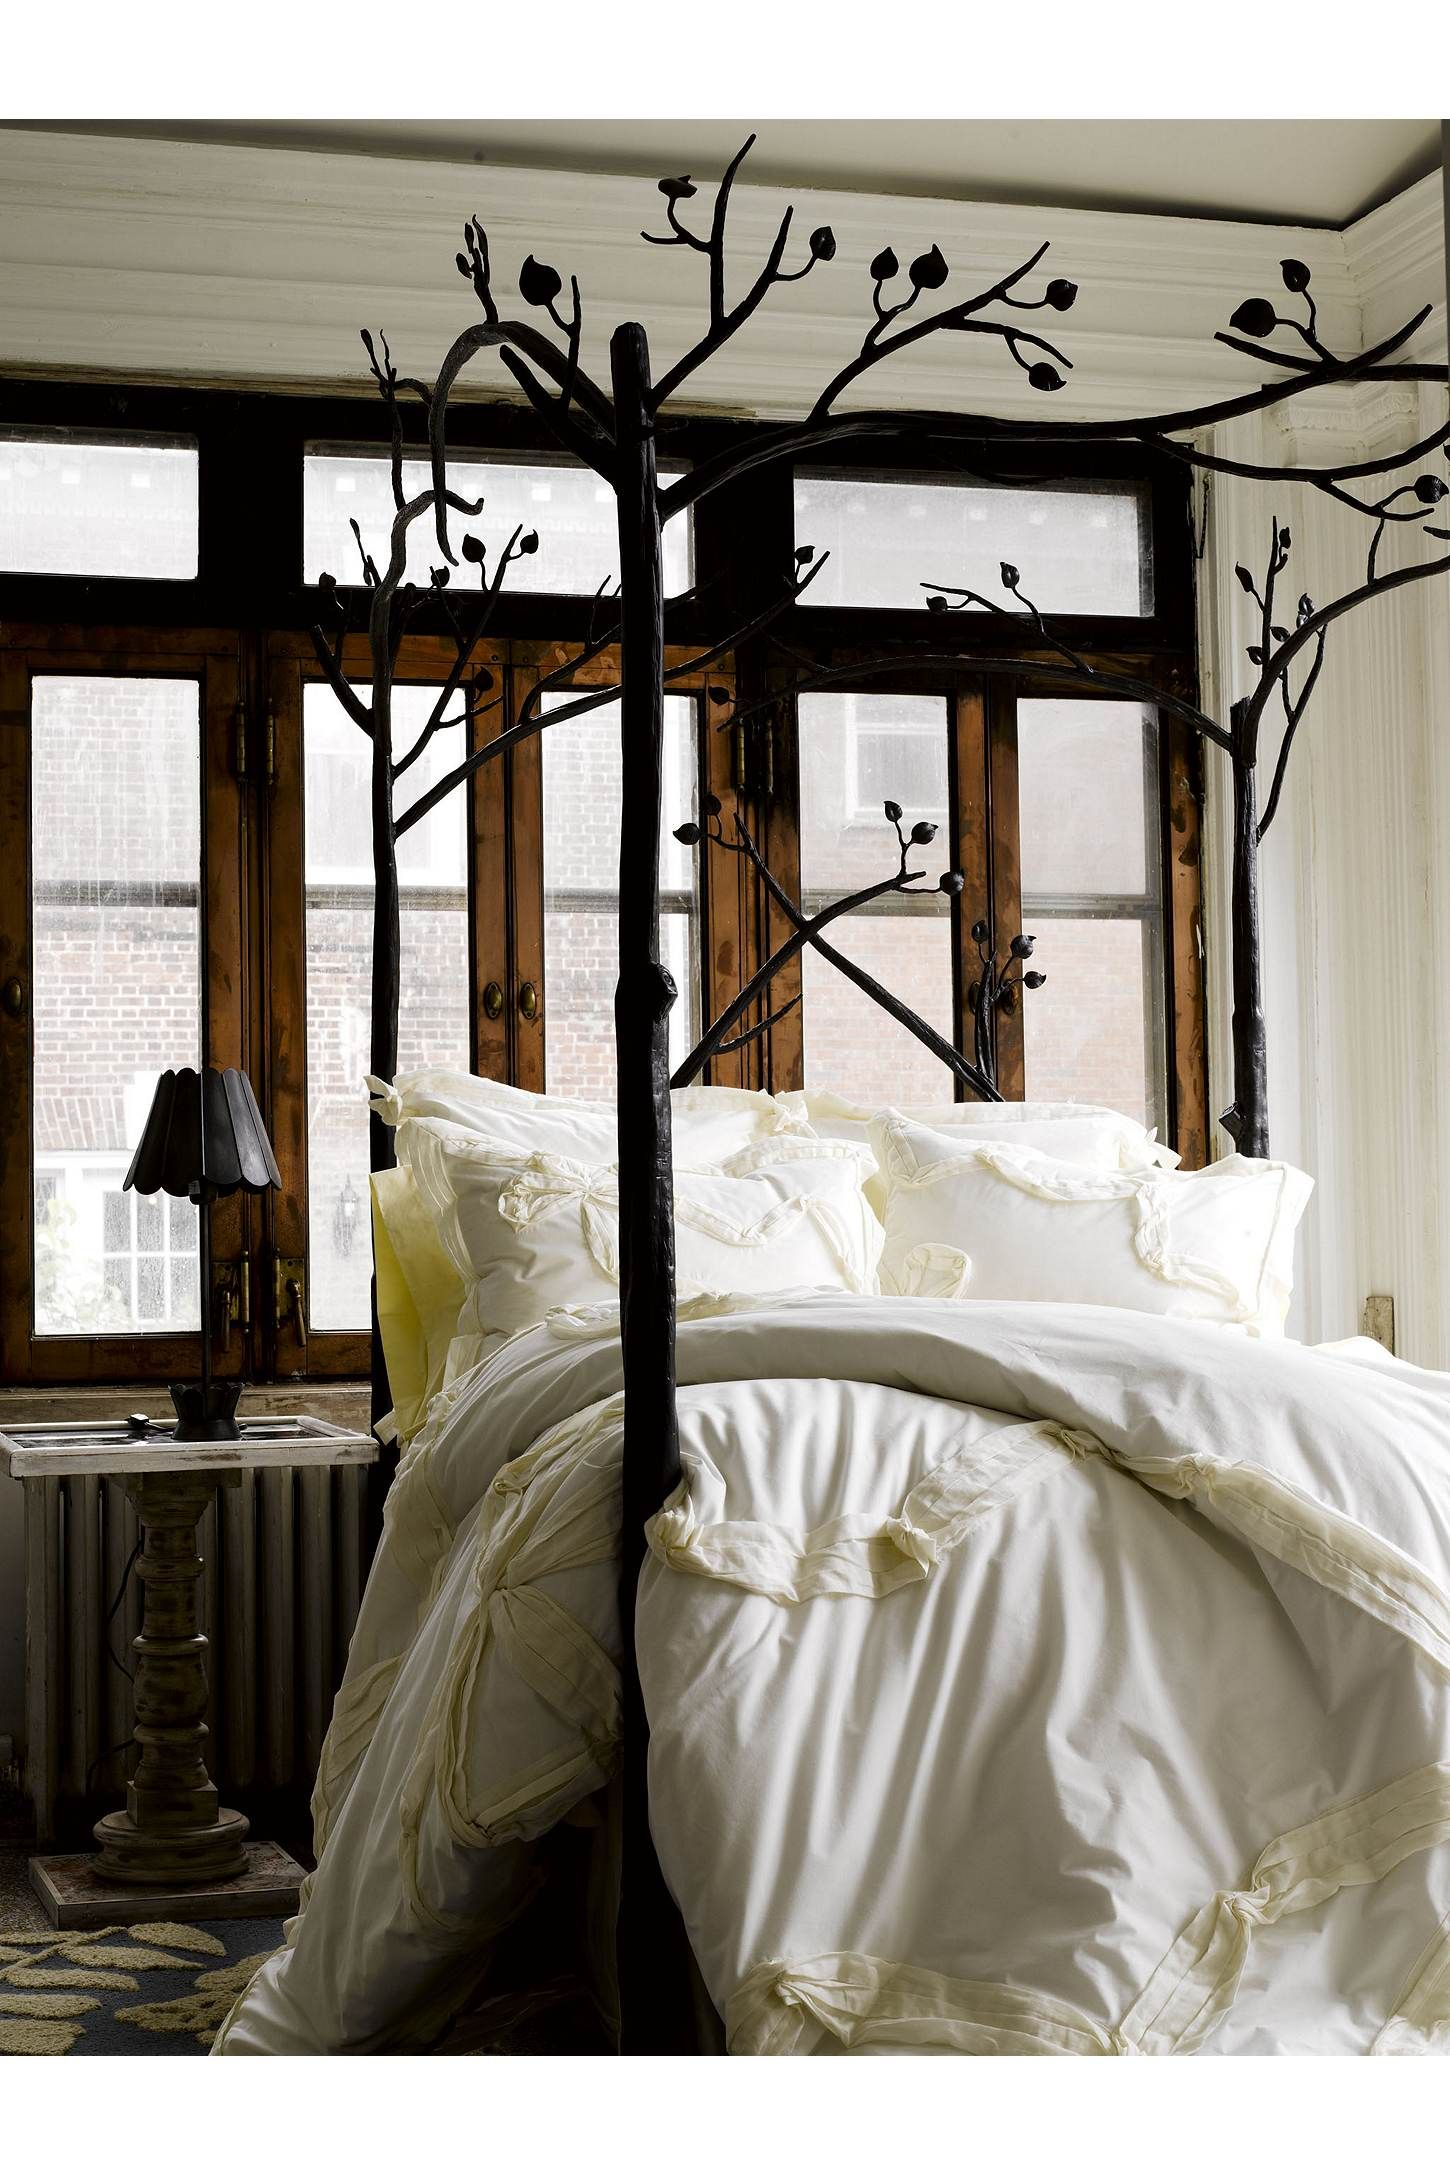 Anthropologie home decor tree branch bed white bedding Anthropologie home decor ideas